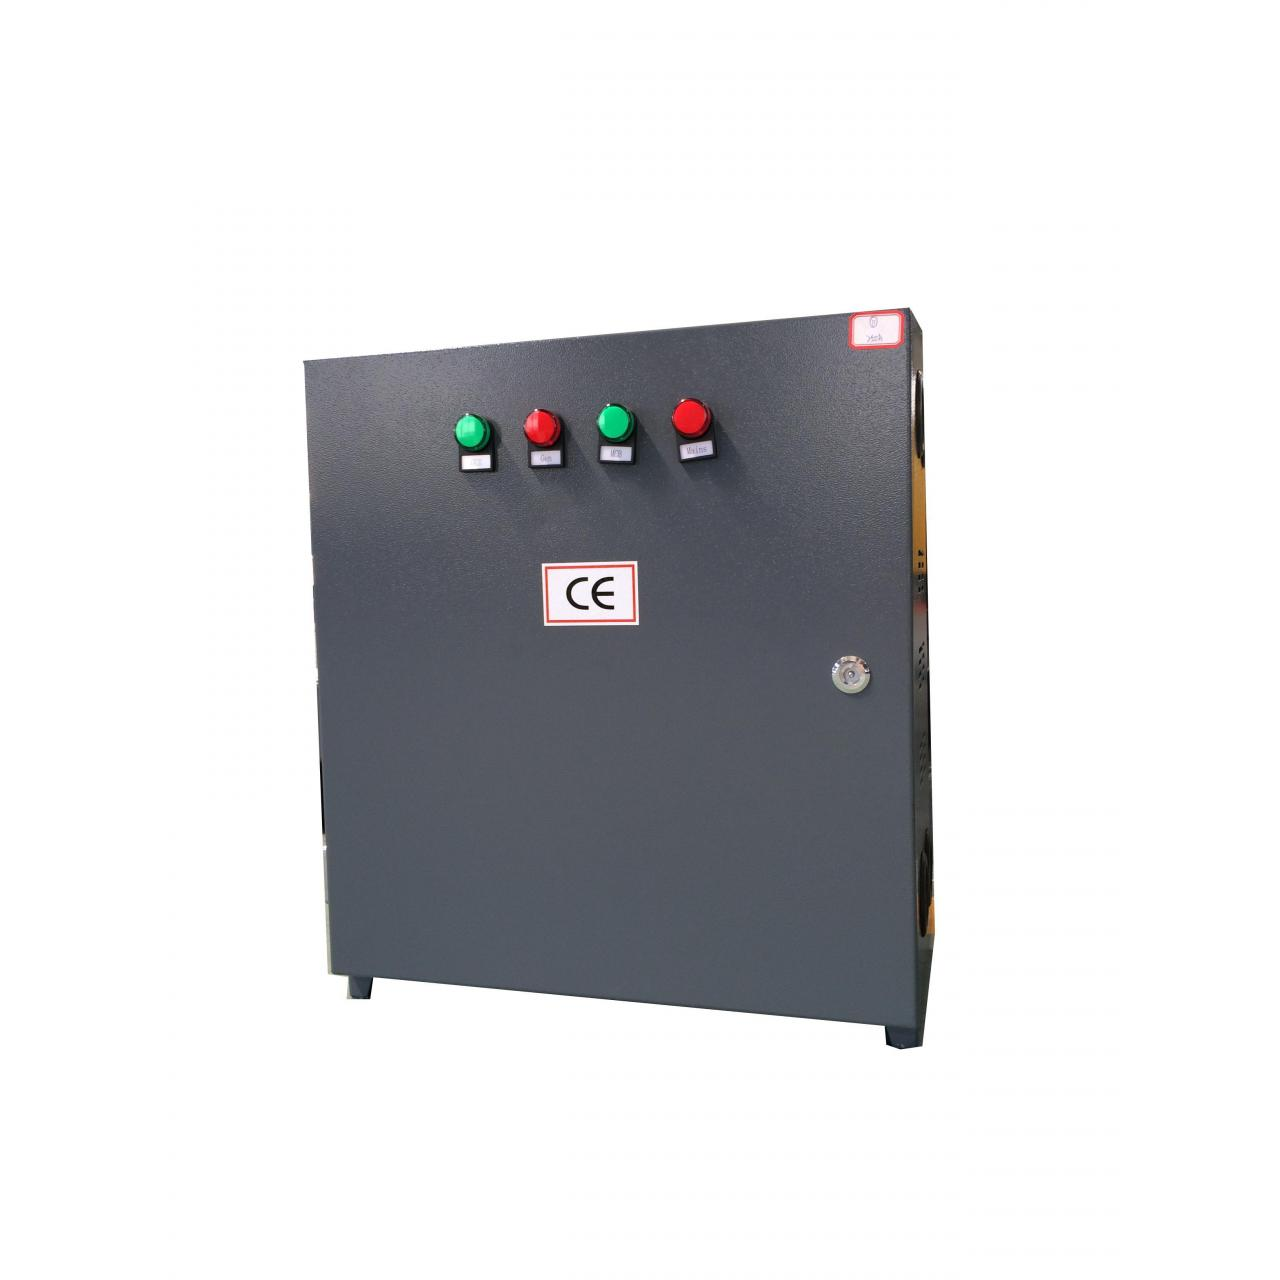 Control System Automatic Transfer Switch